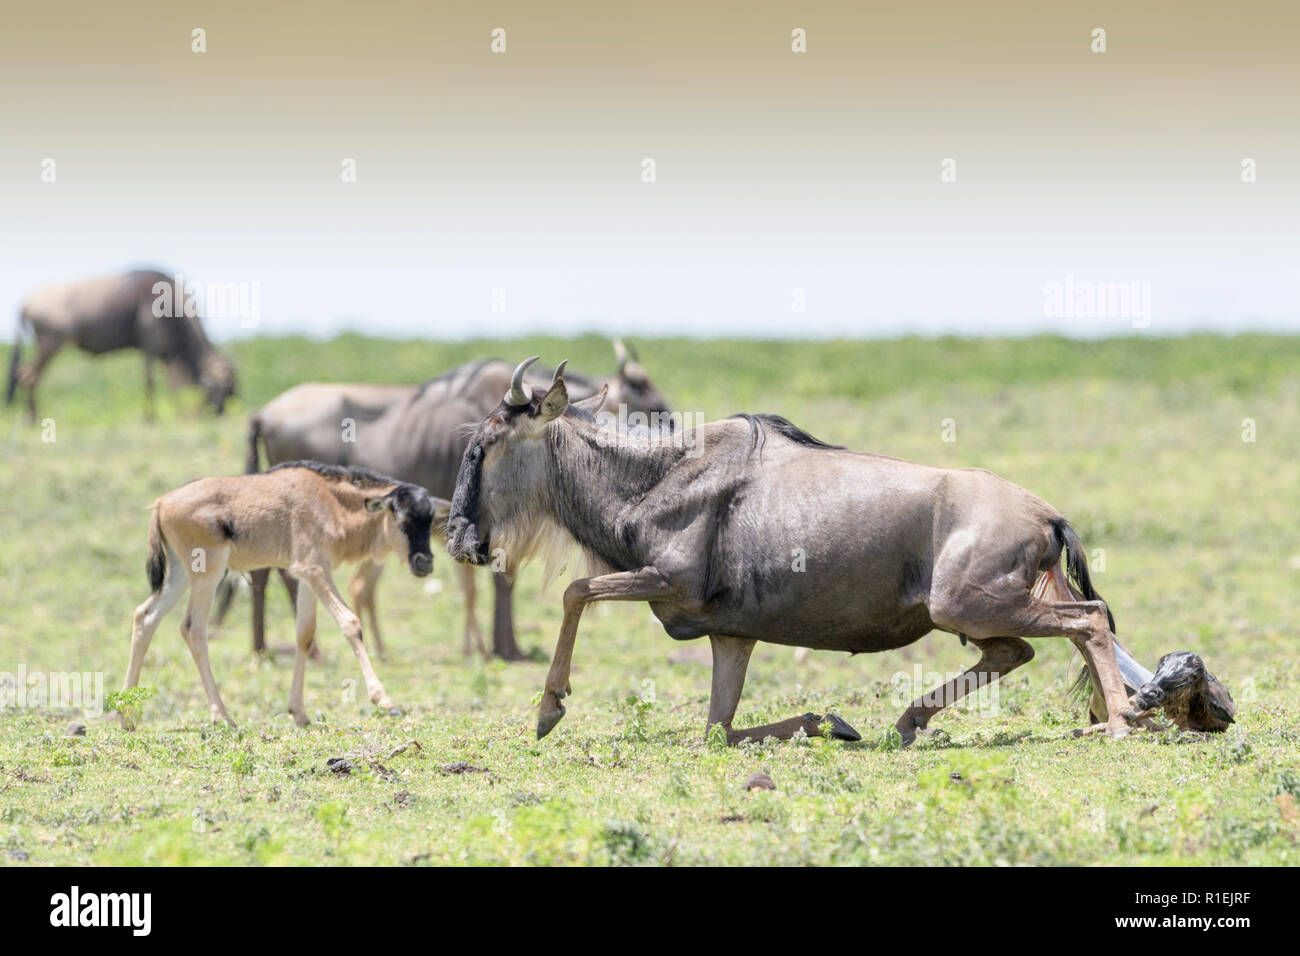 Blue Wildebeest (Connochaetes taurinus) standin up after giving birth to a calf, Ngorongoro conservation area, Tanzania. - Stock Image